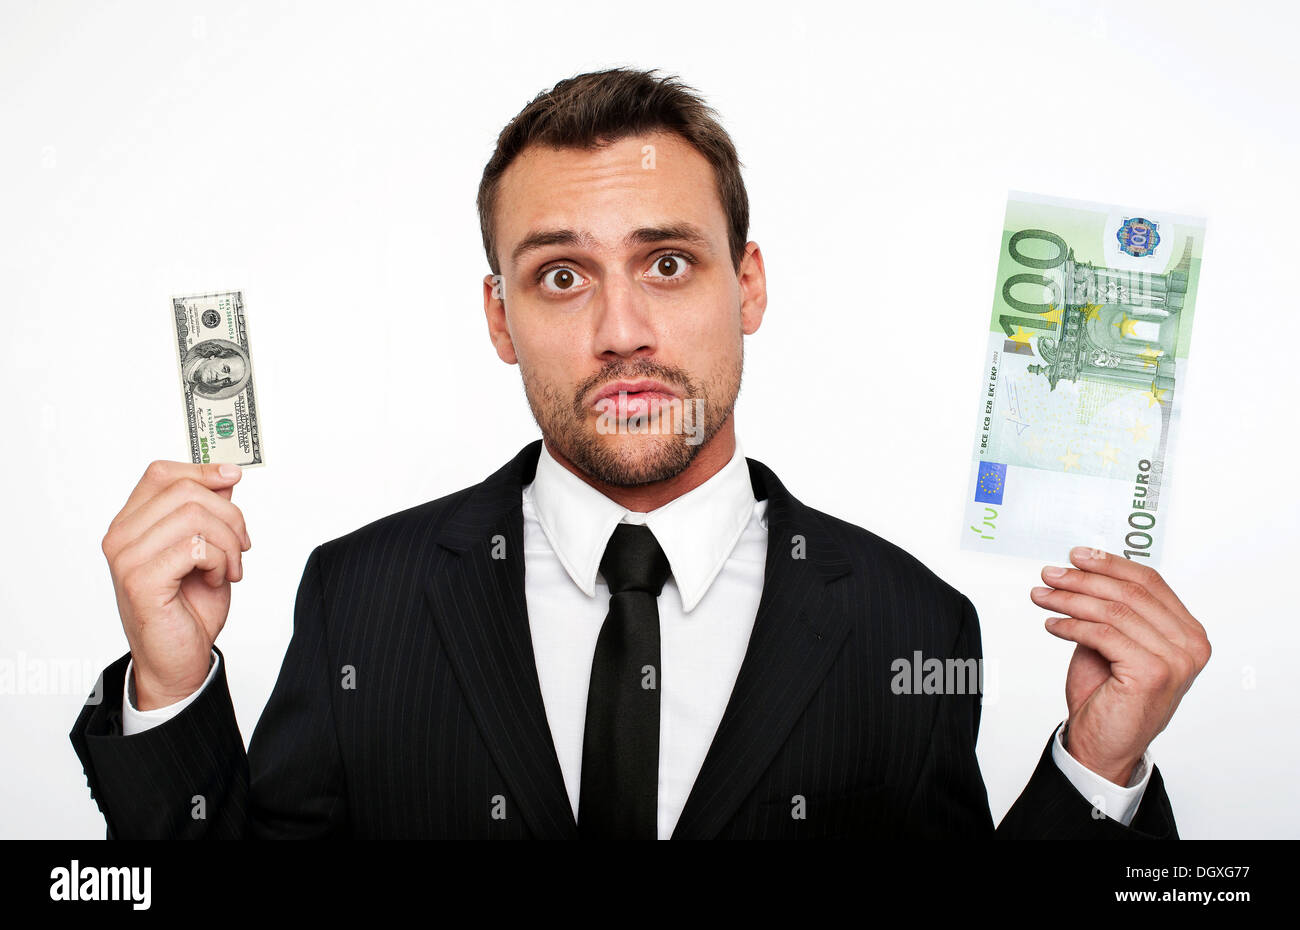 Frustrated young man wearing a suit holding a small 100 dollar bill ...